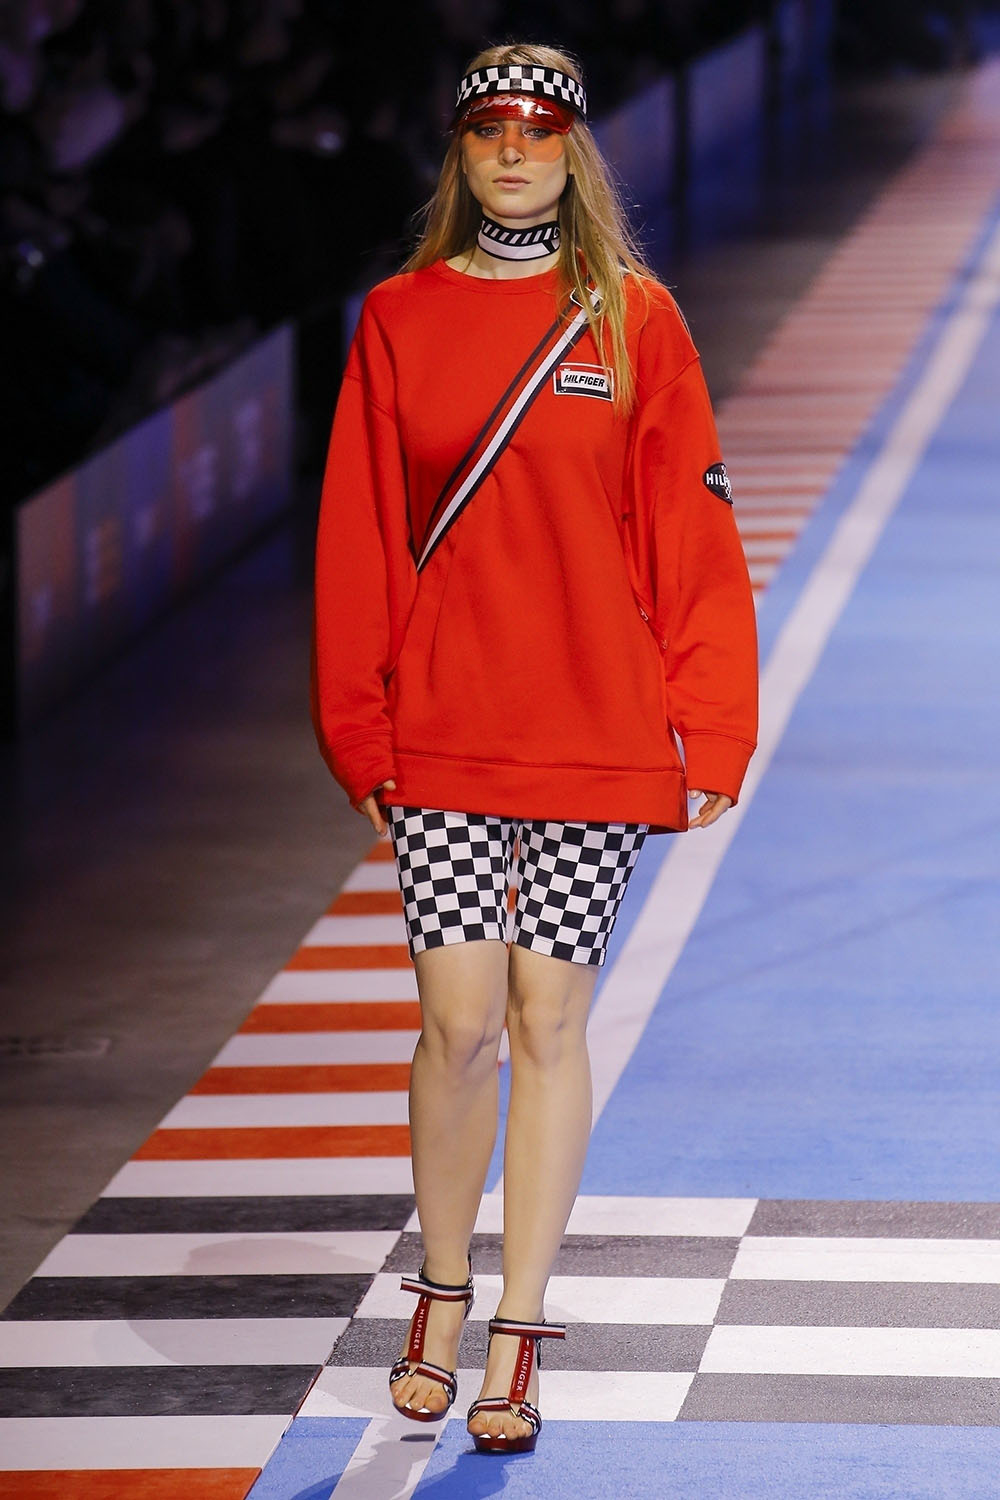 Audrey at The Tommy Hilfiger fashion show in Milan